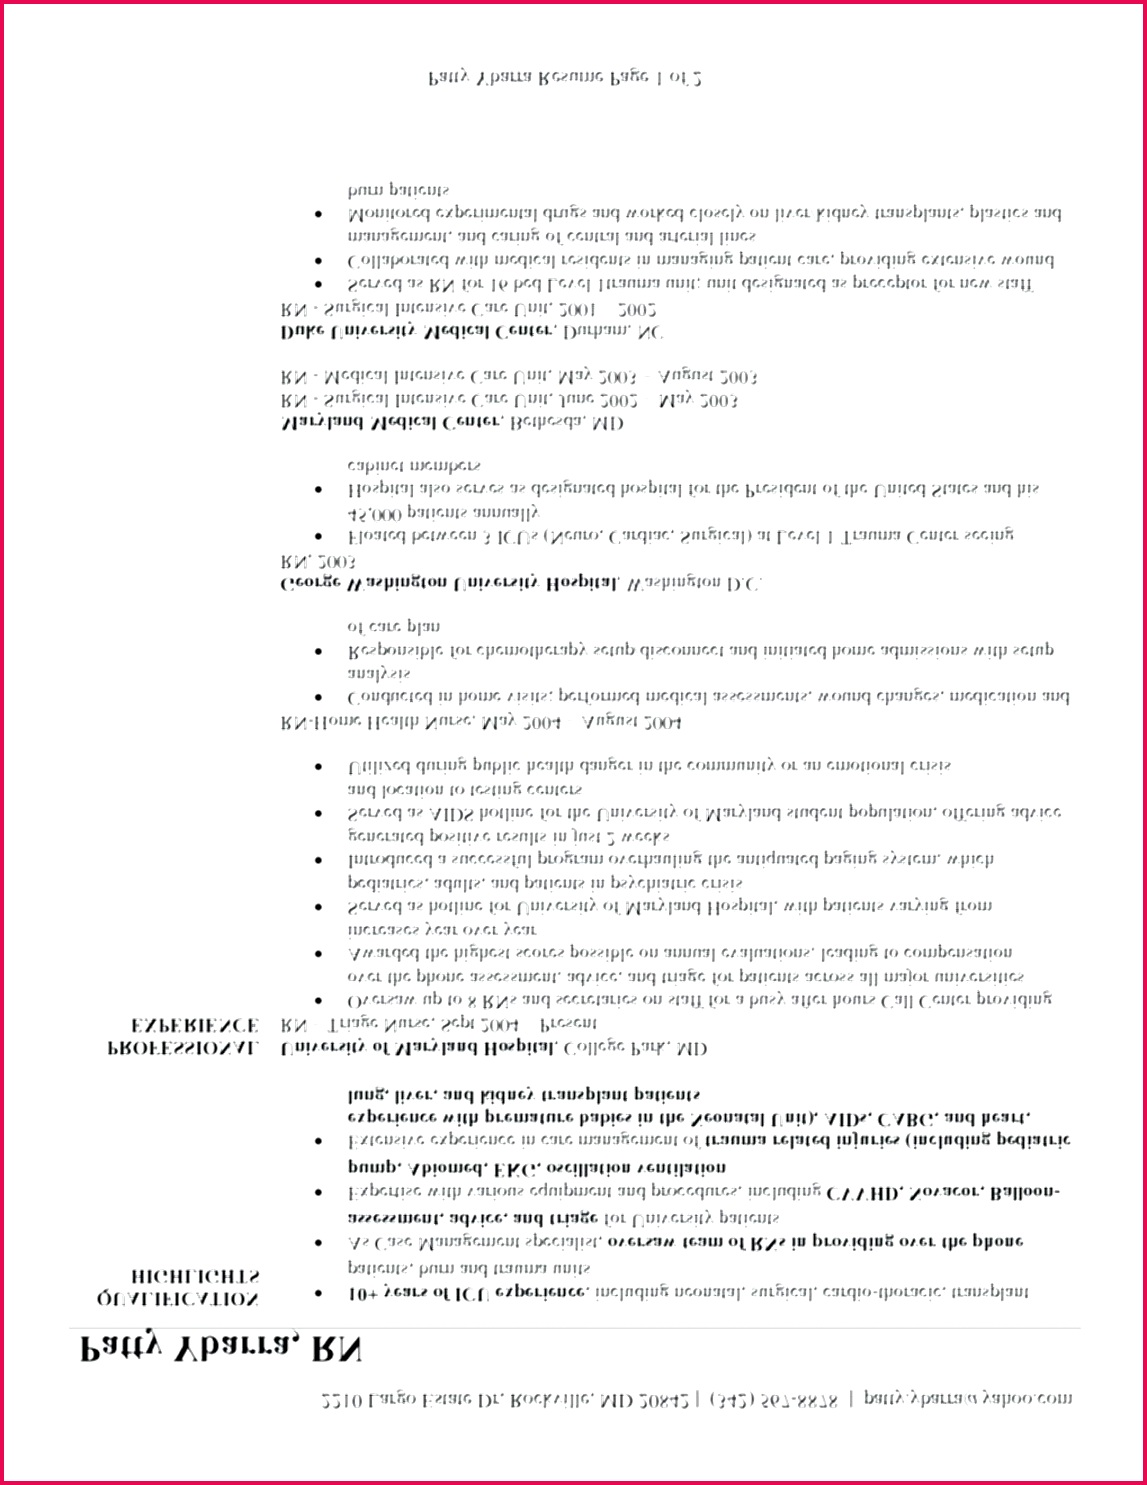 scholarship certificate template awesome congratulations certificate template word partnership certificate pictures of scholarship certificate template